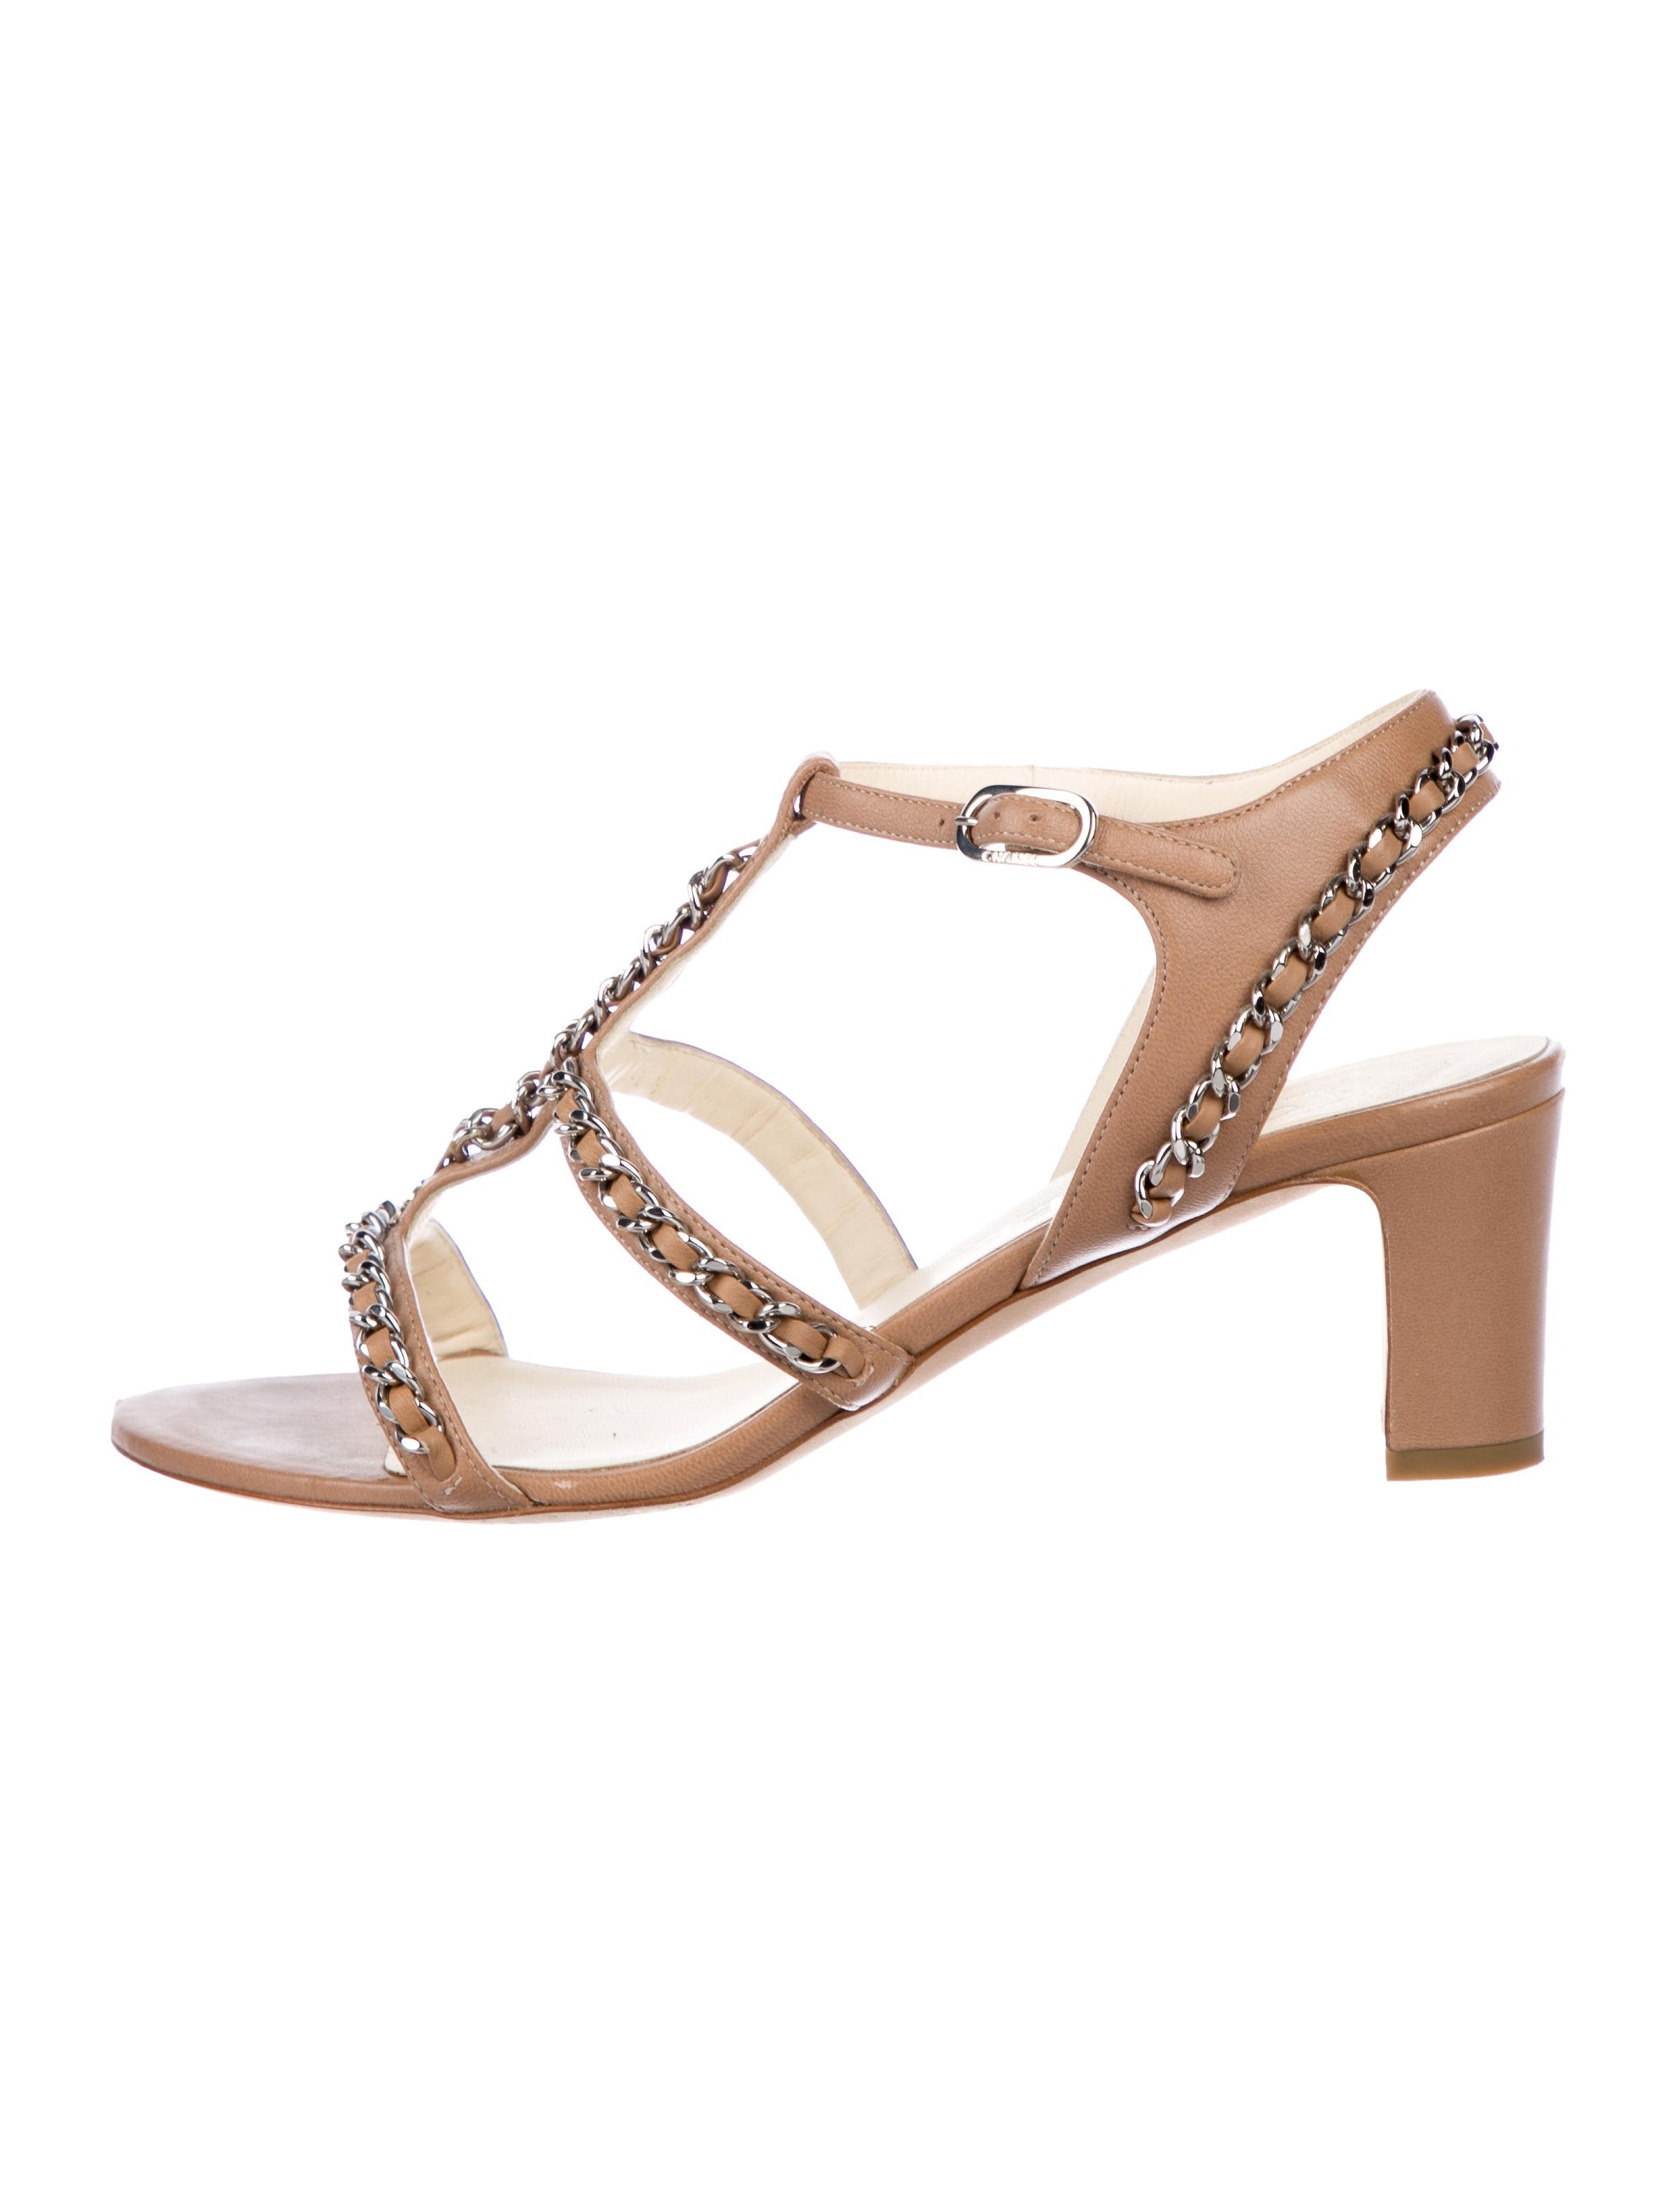 0481d7f81505bf Chanel Sandals